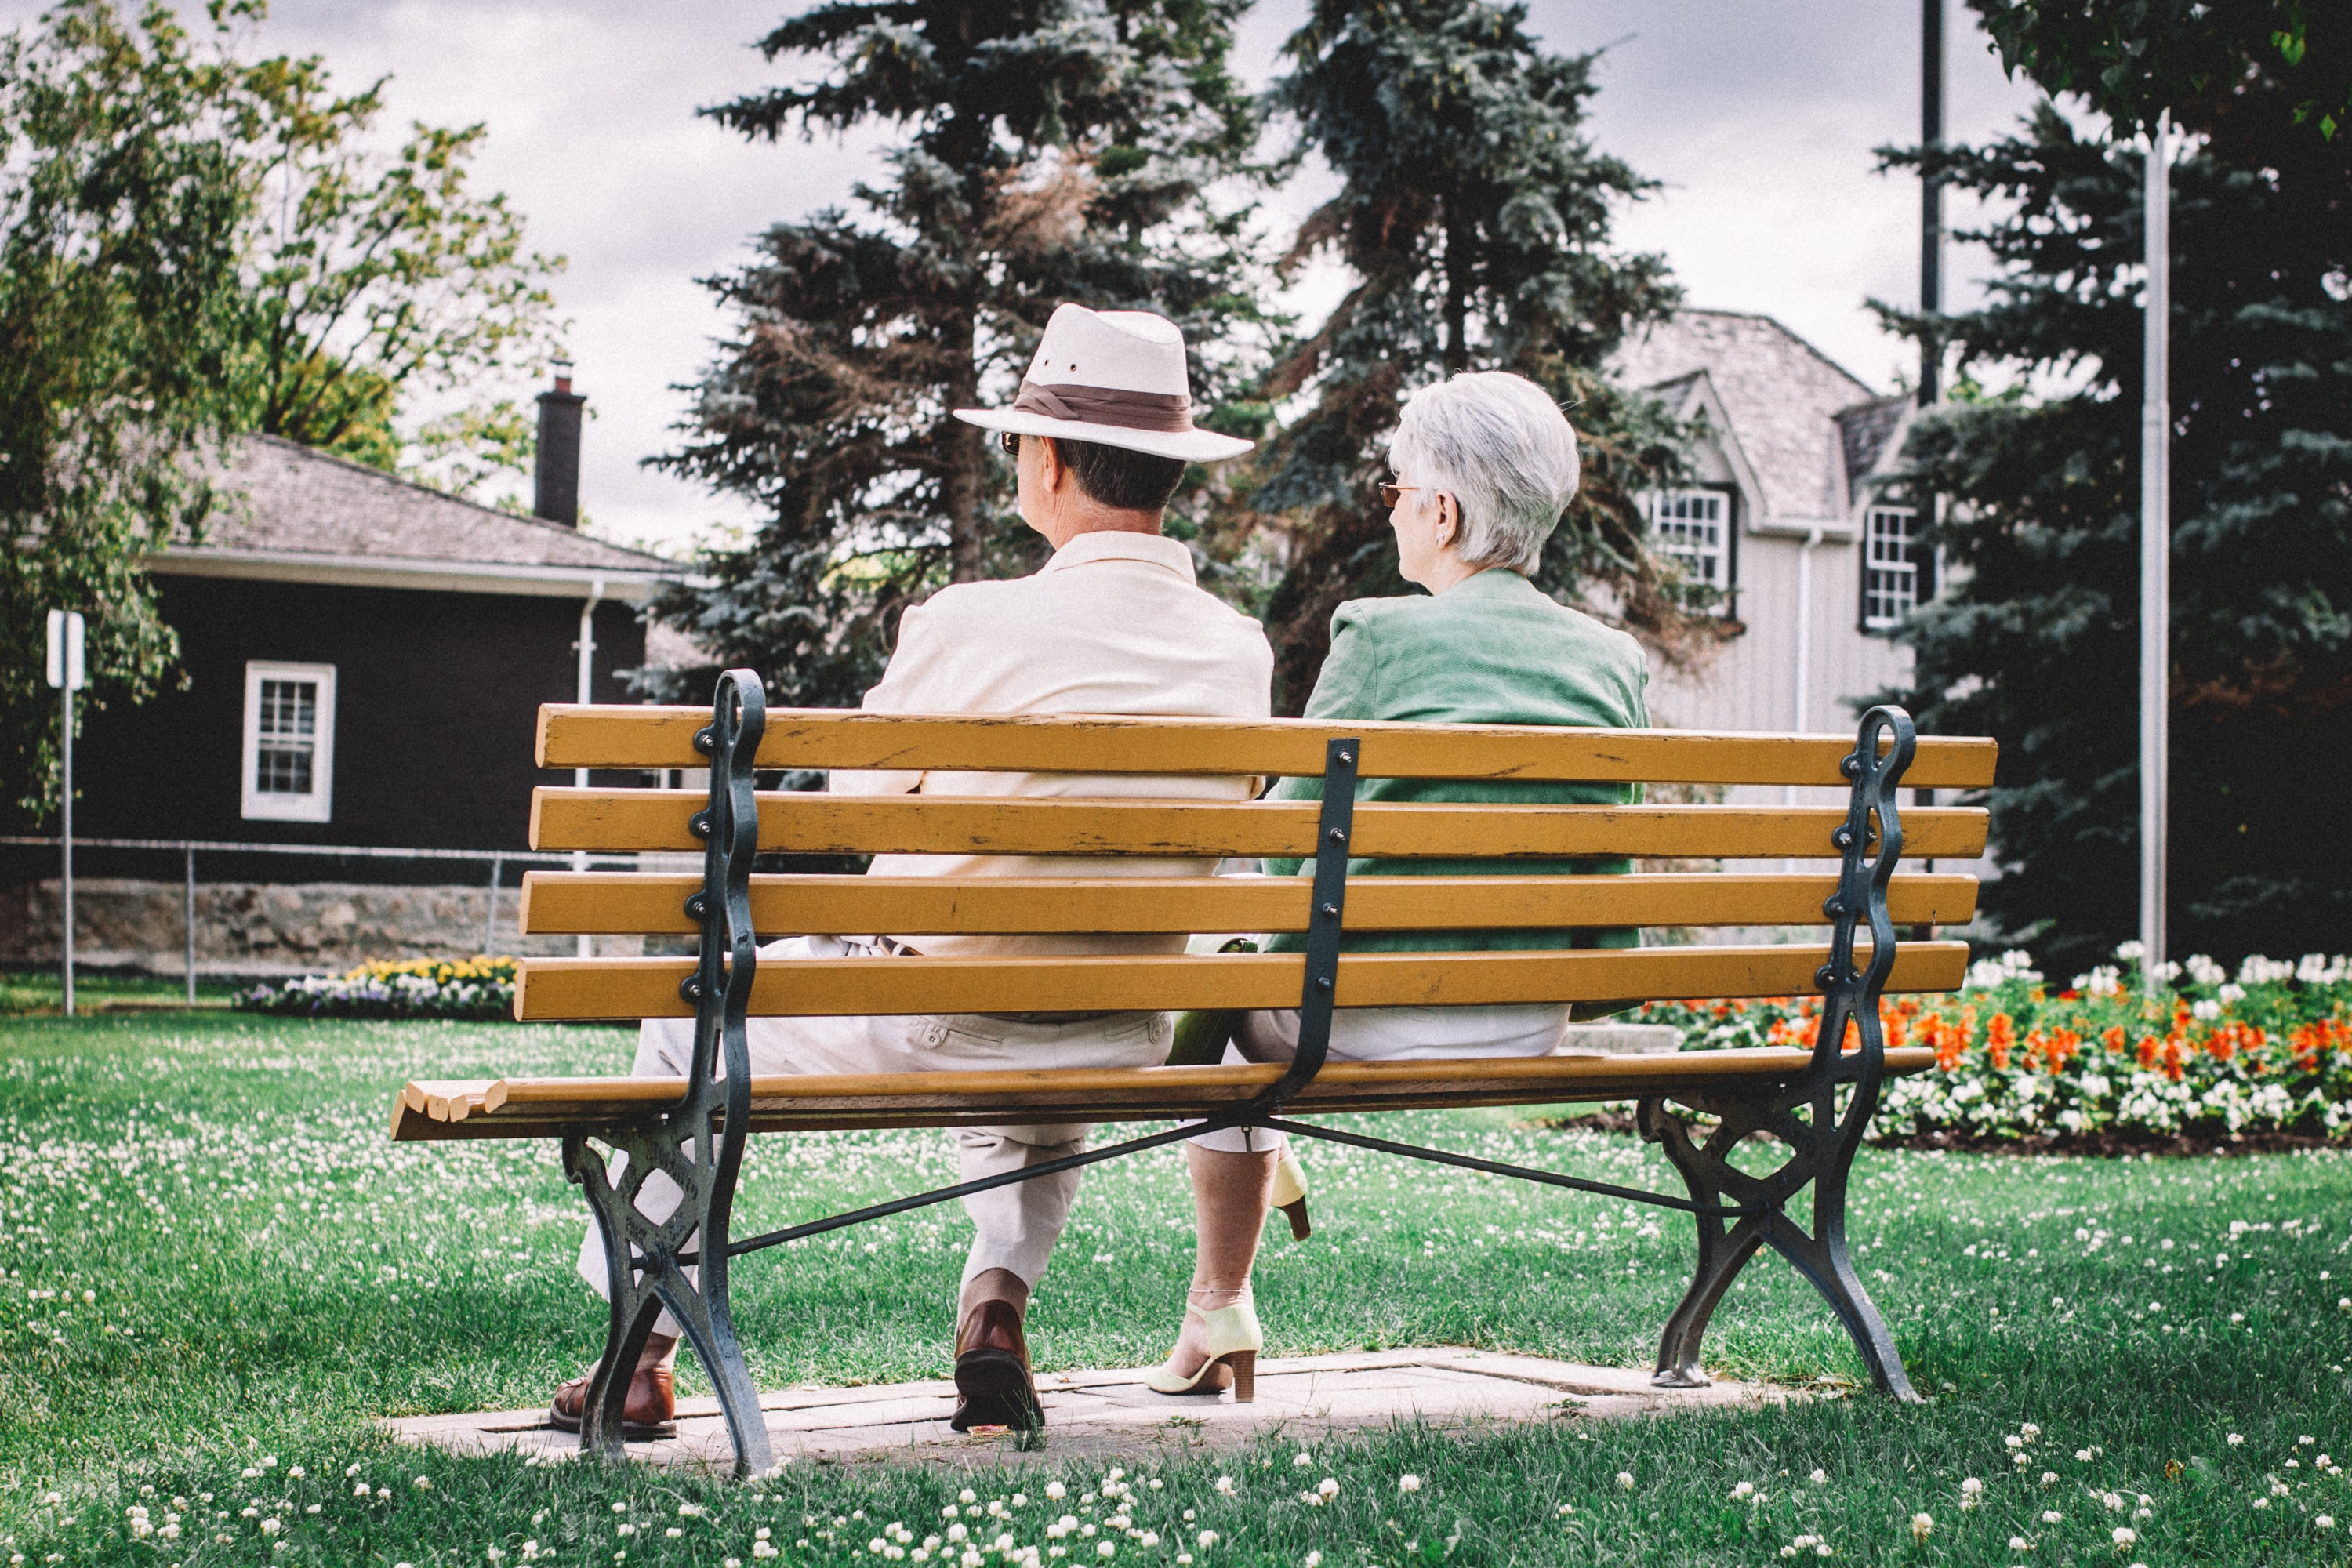 Online dating is also possible for singles over 60